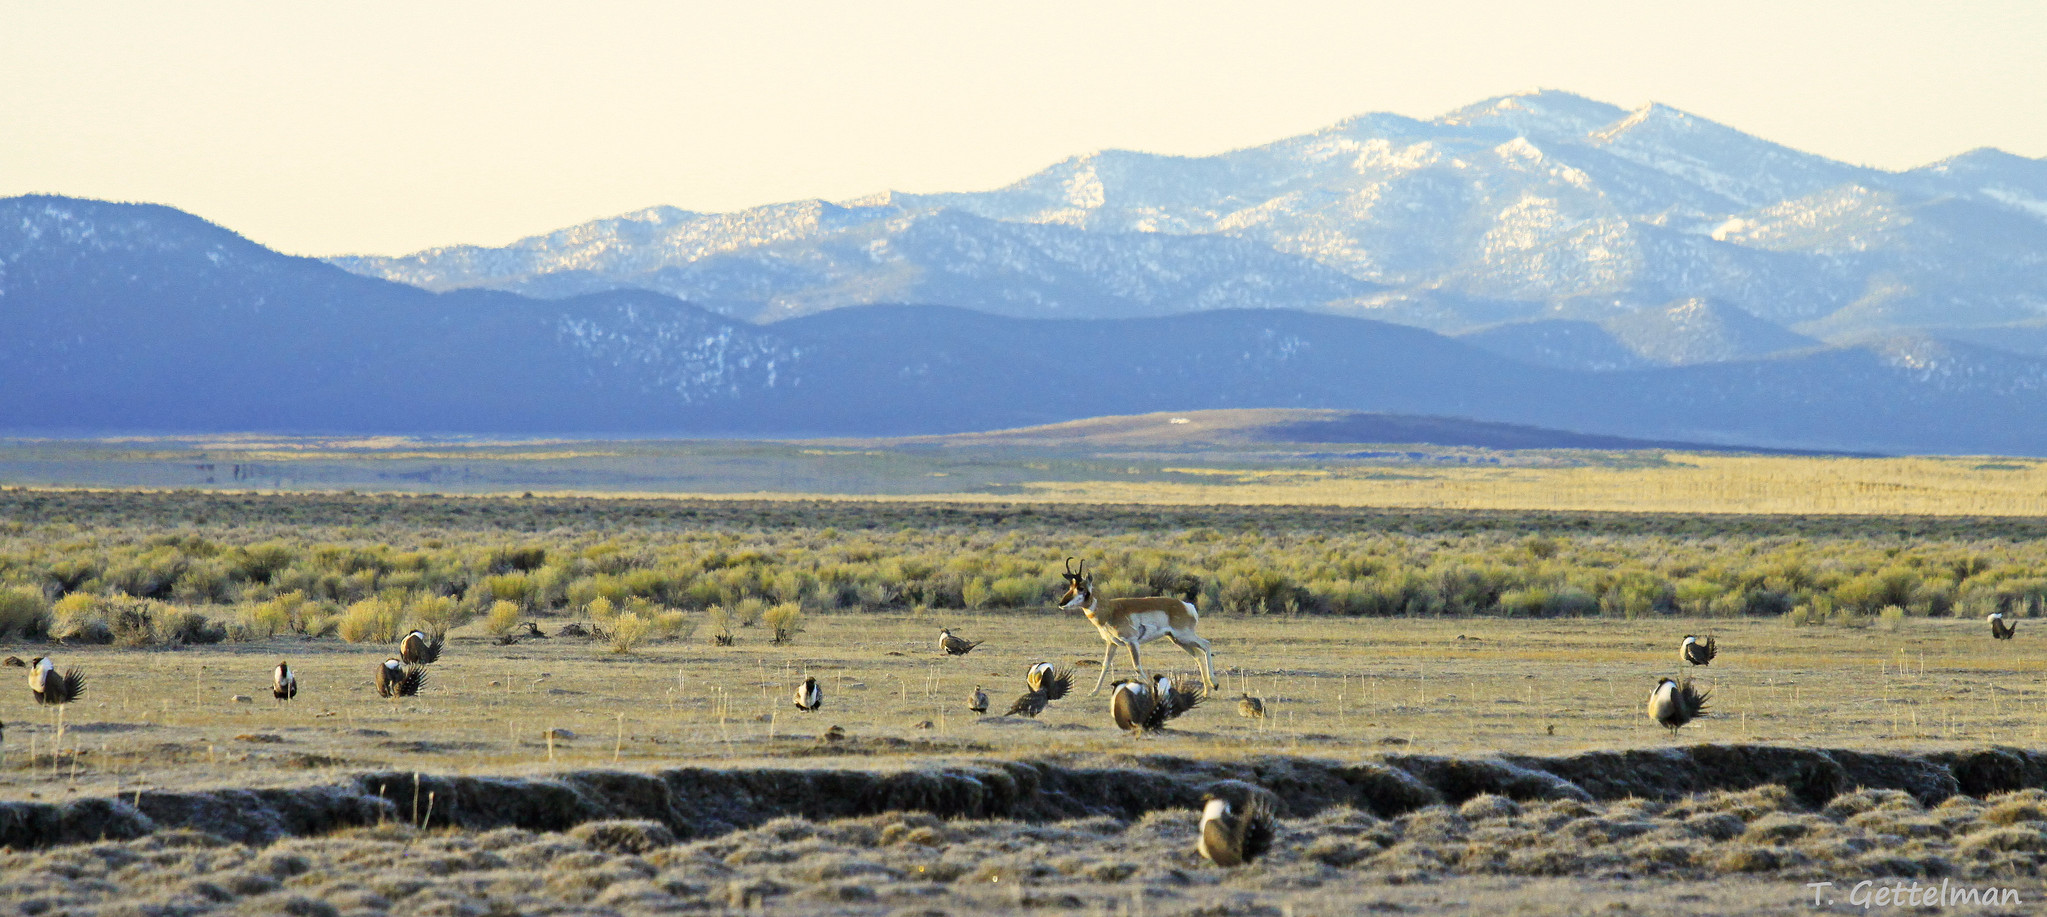 Leking Greater sage-grouse and pronghorn male, Northeastern Nevada